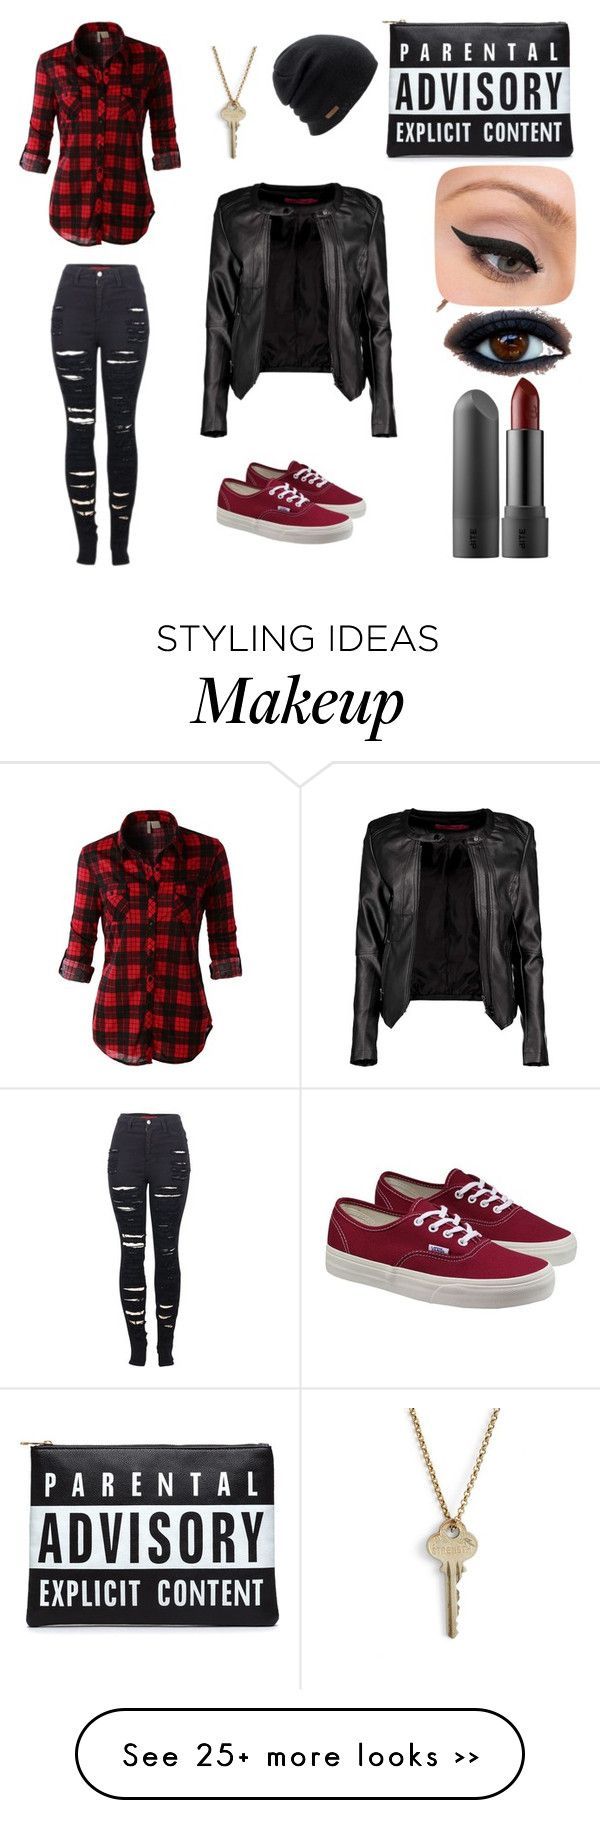 """Untitled #1"" by xxovercastkidxx on Polyvore featuring Boohoo, LE3NO, 2LUV, Vans, The Giving Keys, LORAC and Coal"